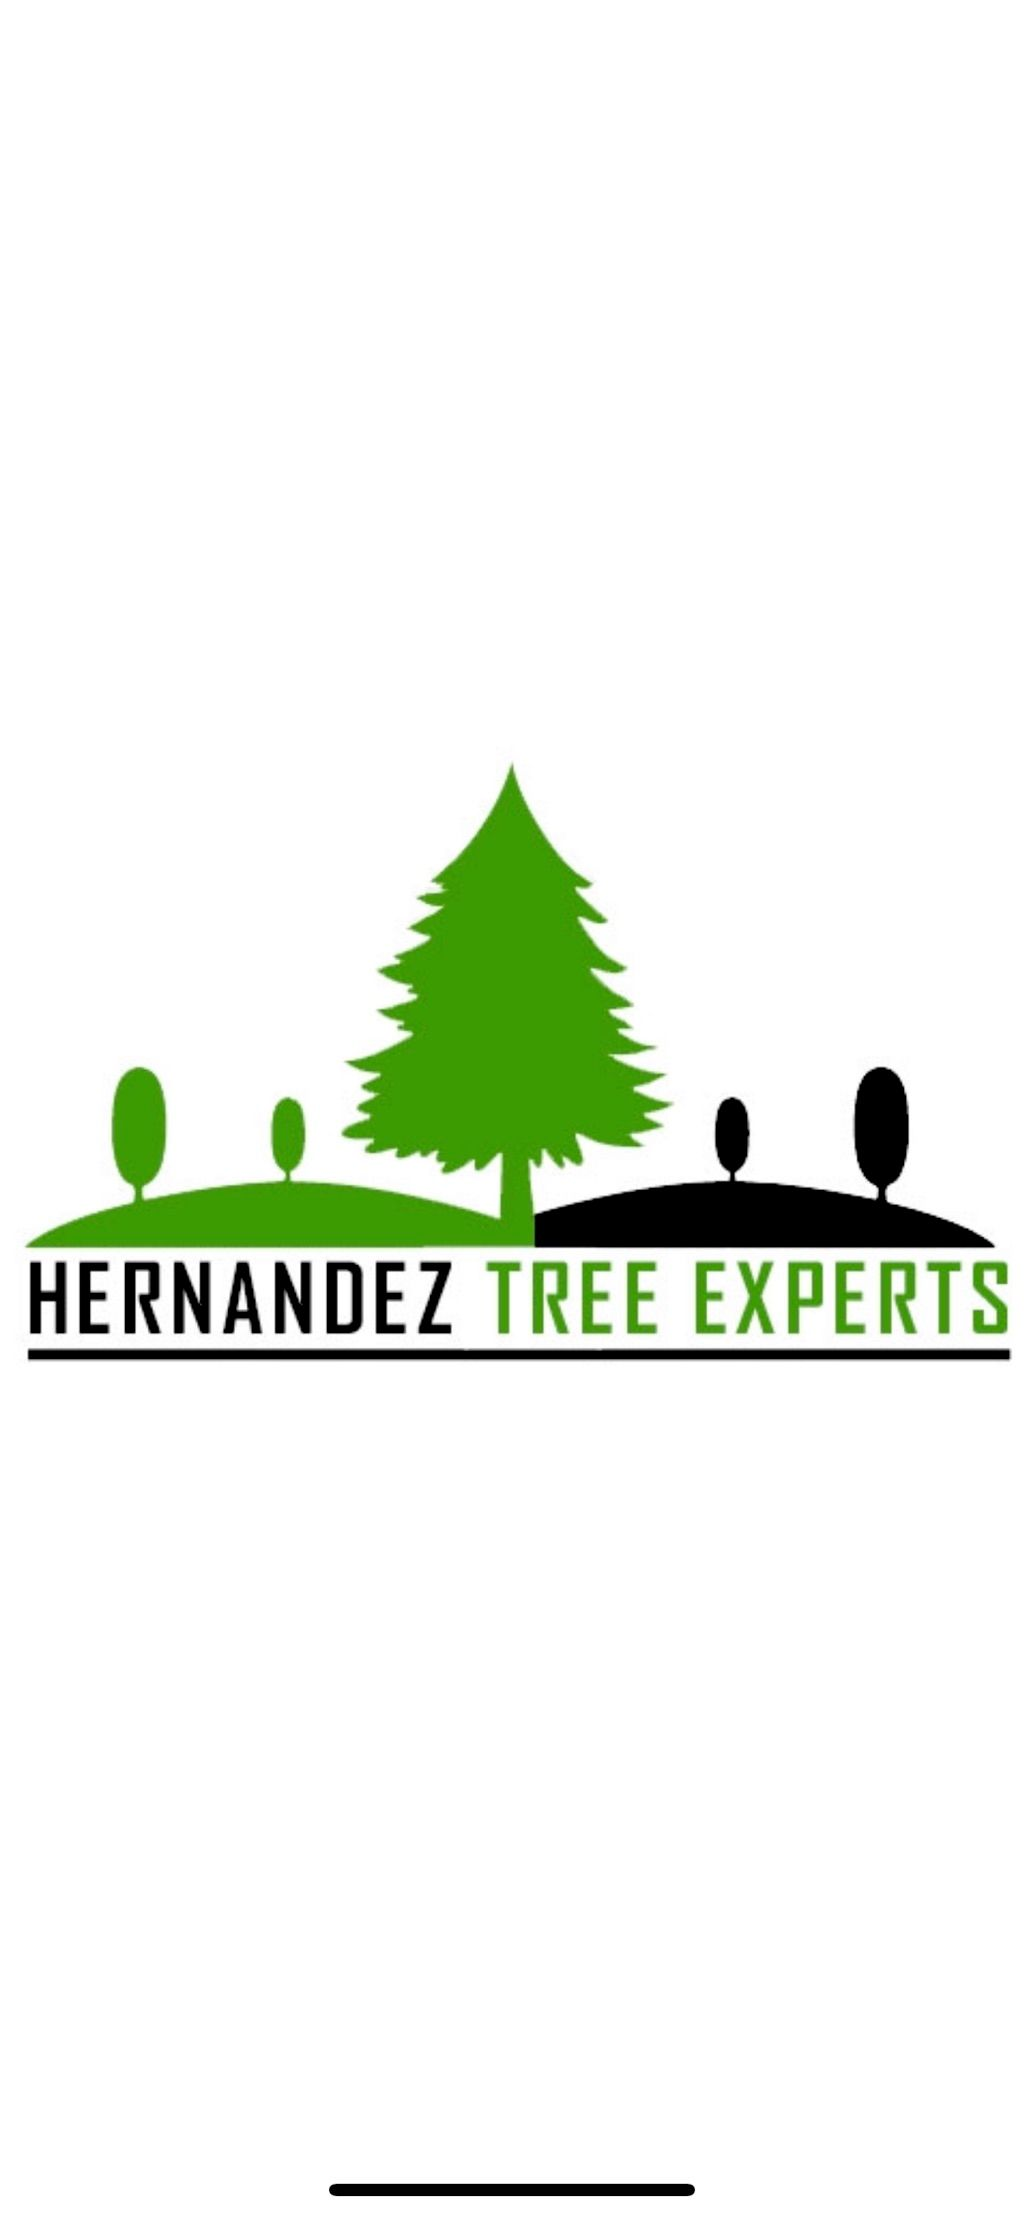 🌳Hernandez Tree Experts🌳